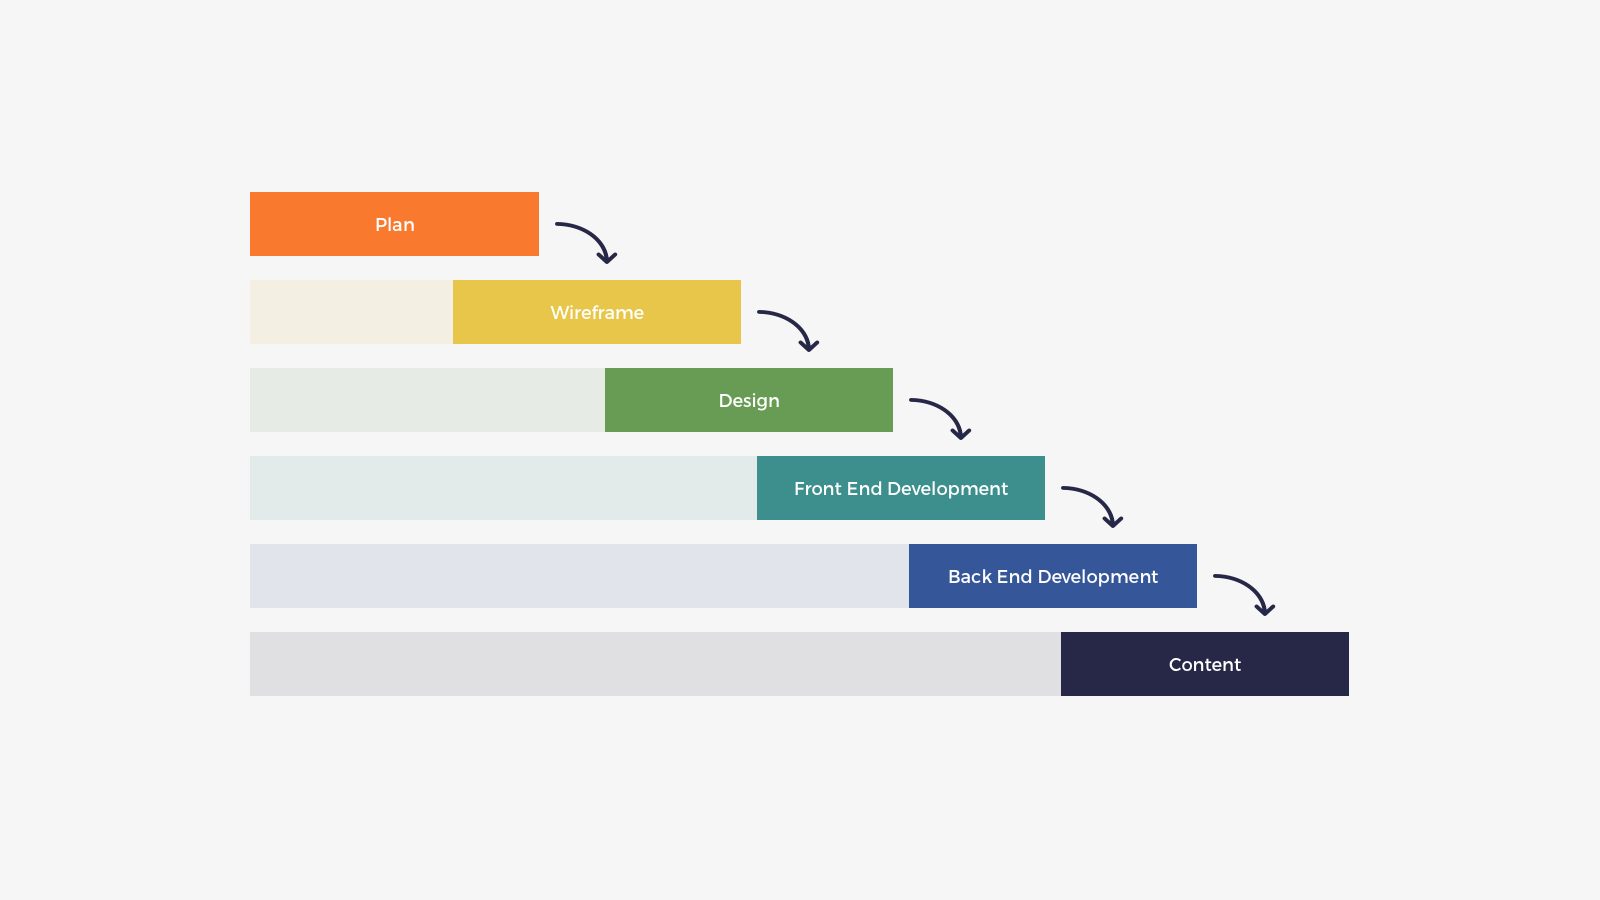 Traditional waterfall project workflow not using content as a service